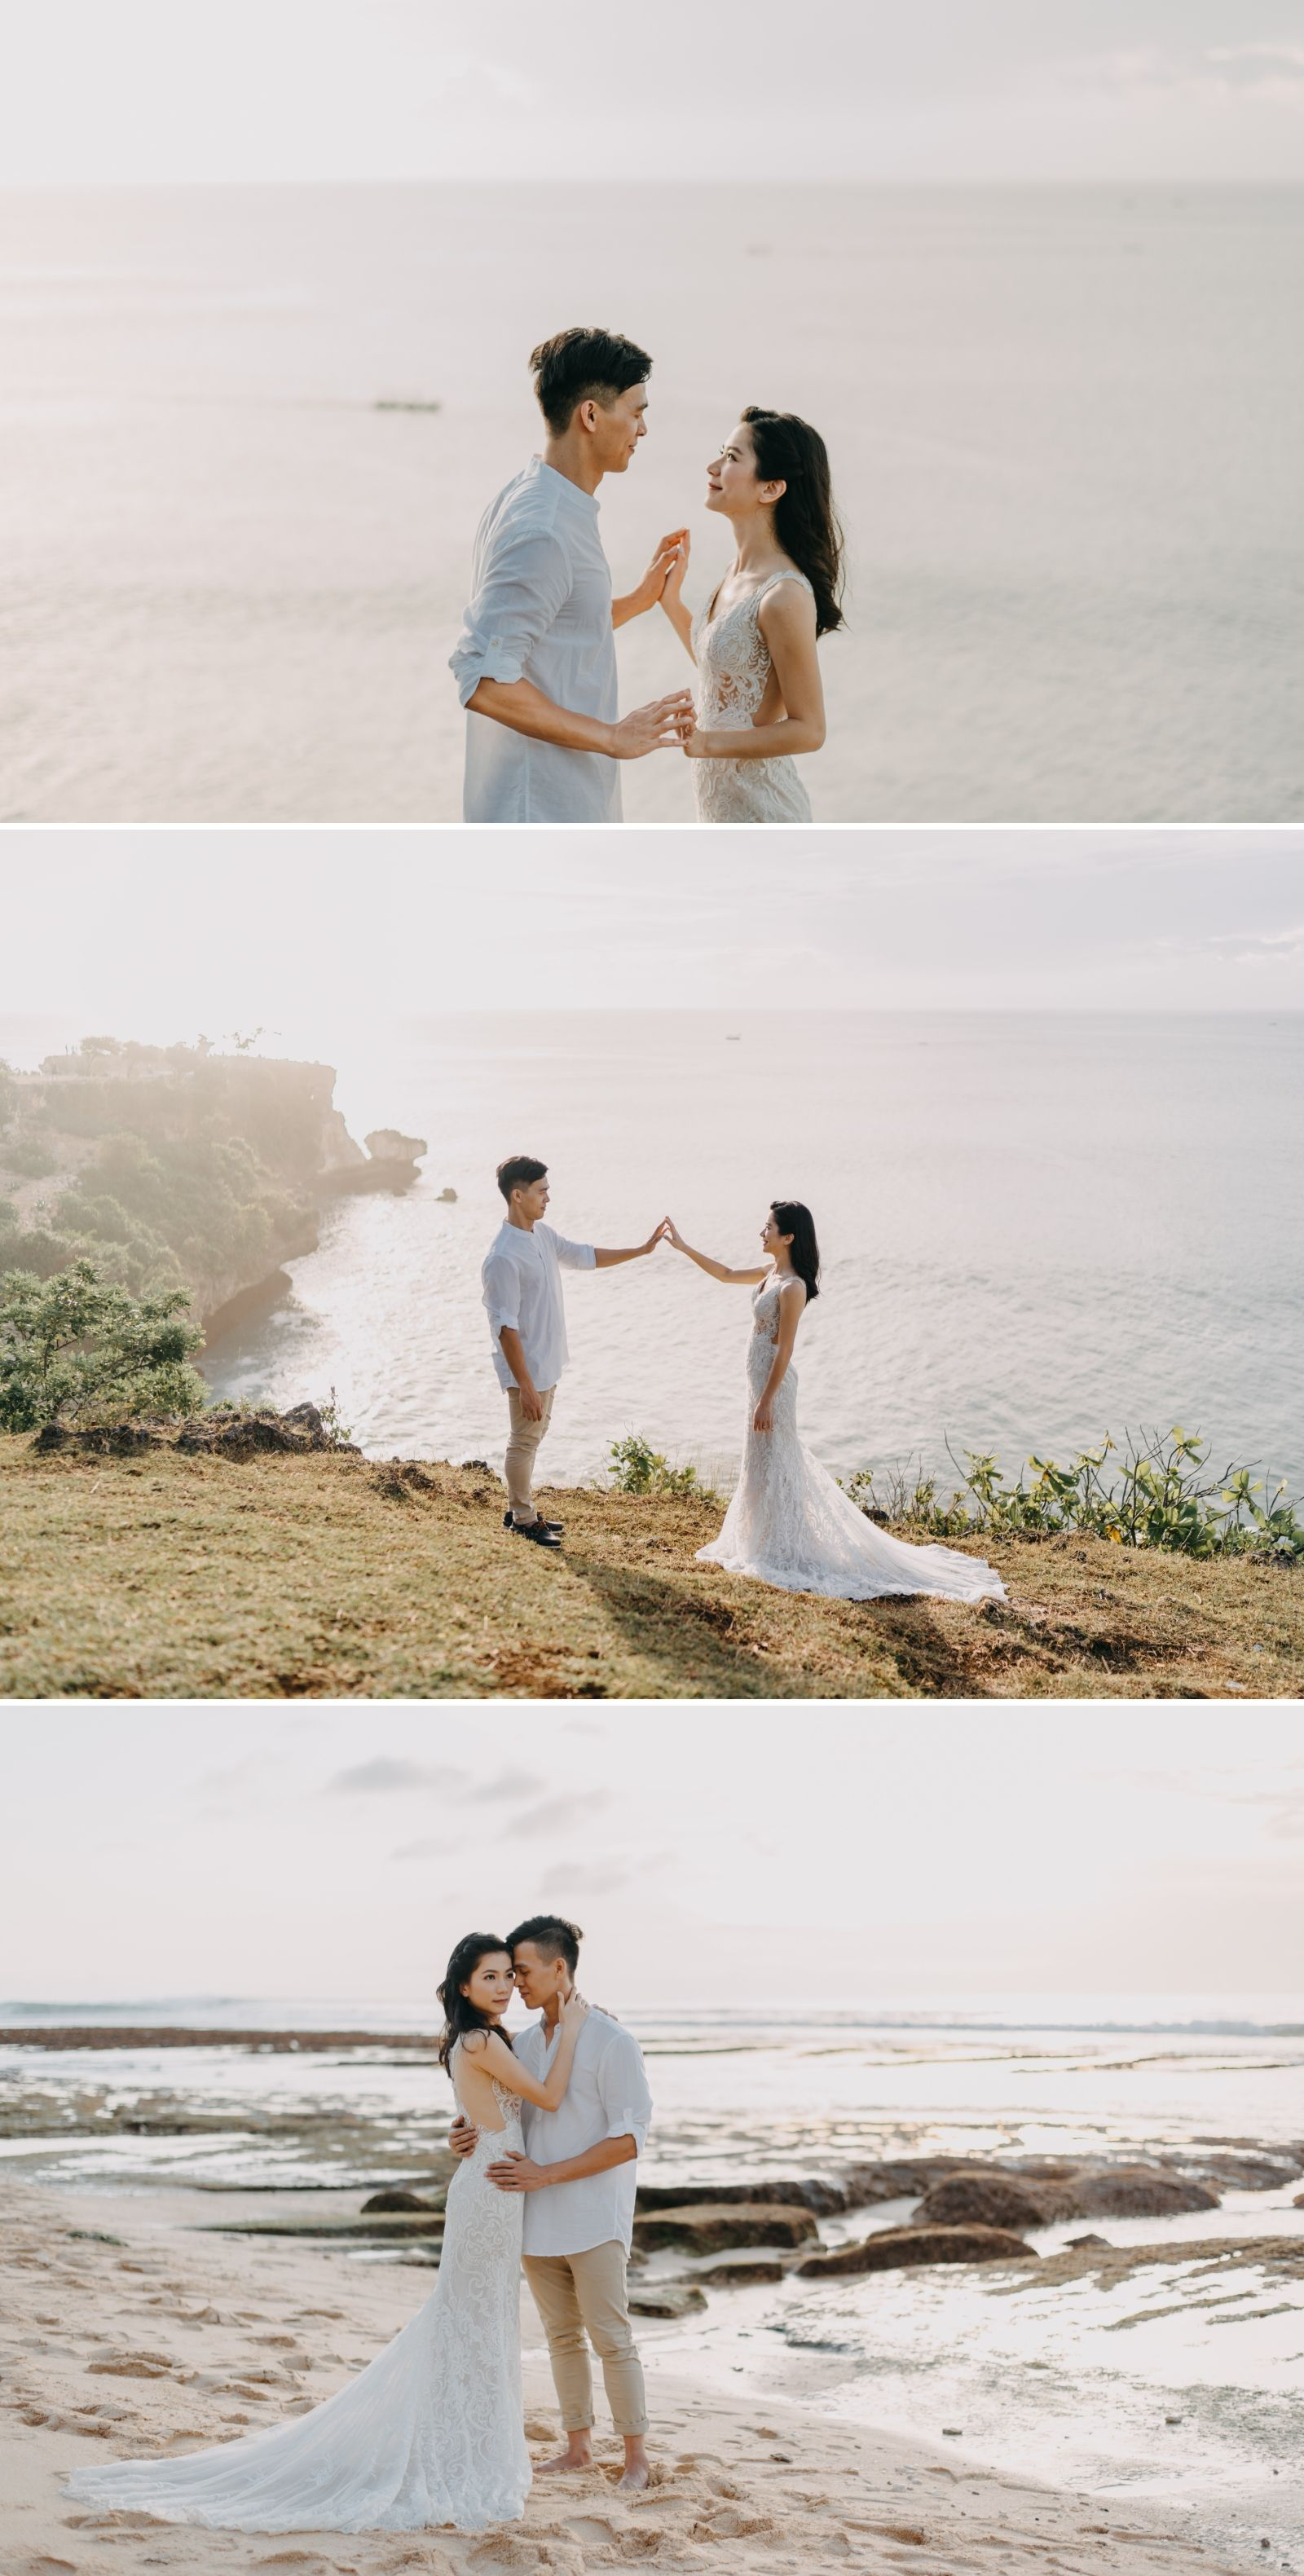 Wedding Photoshoot In Bali Rated 4 9 Stars Trusted By 2300 Couples Onethreeonefour Prewedding Photography Wedding Photoshoot Pre Wedding Photoshoot Outdoor